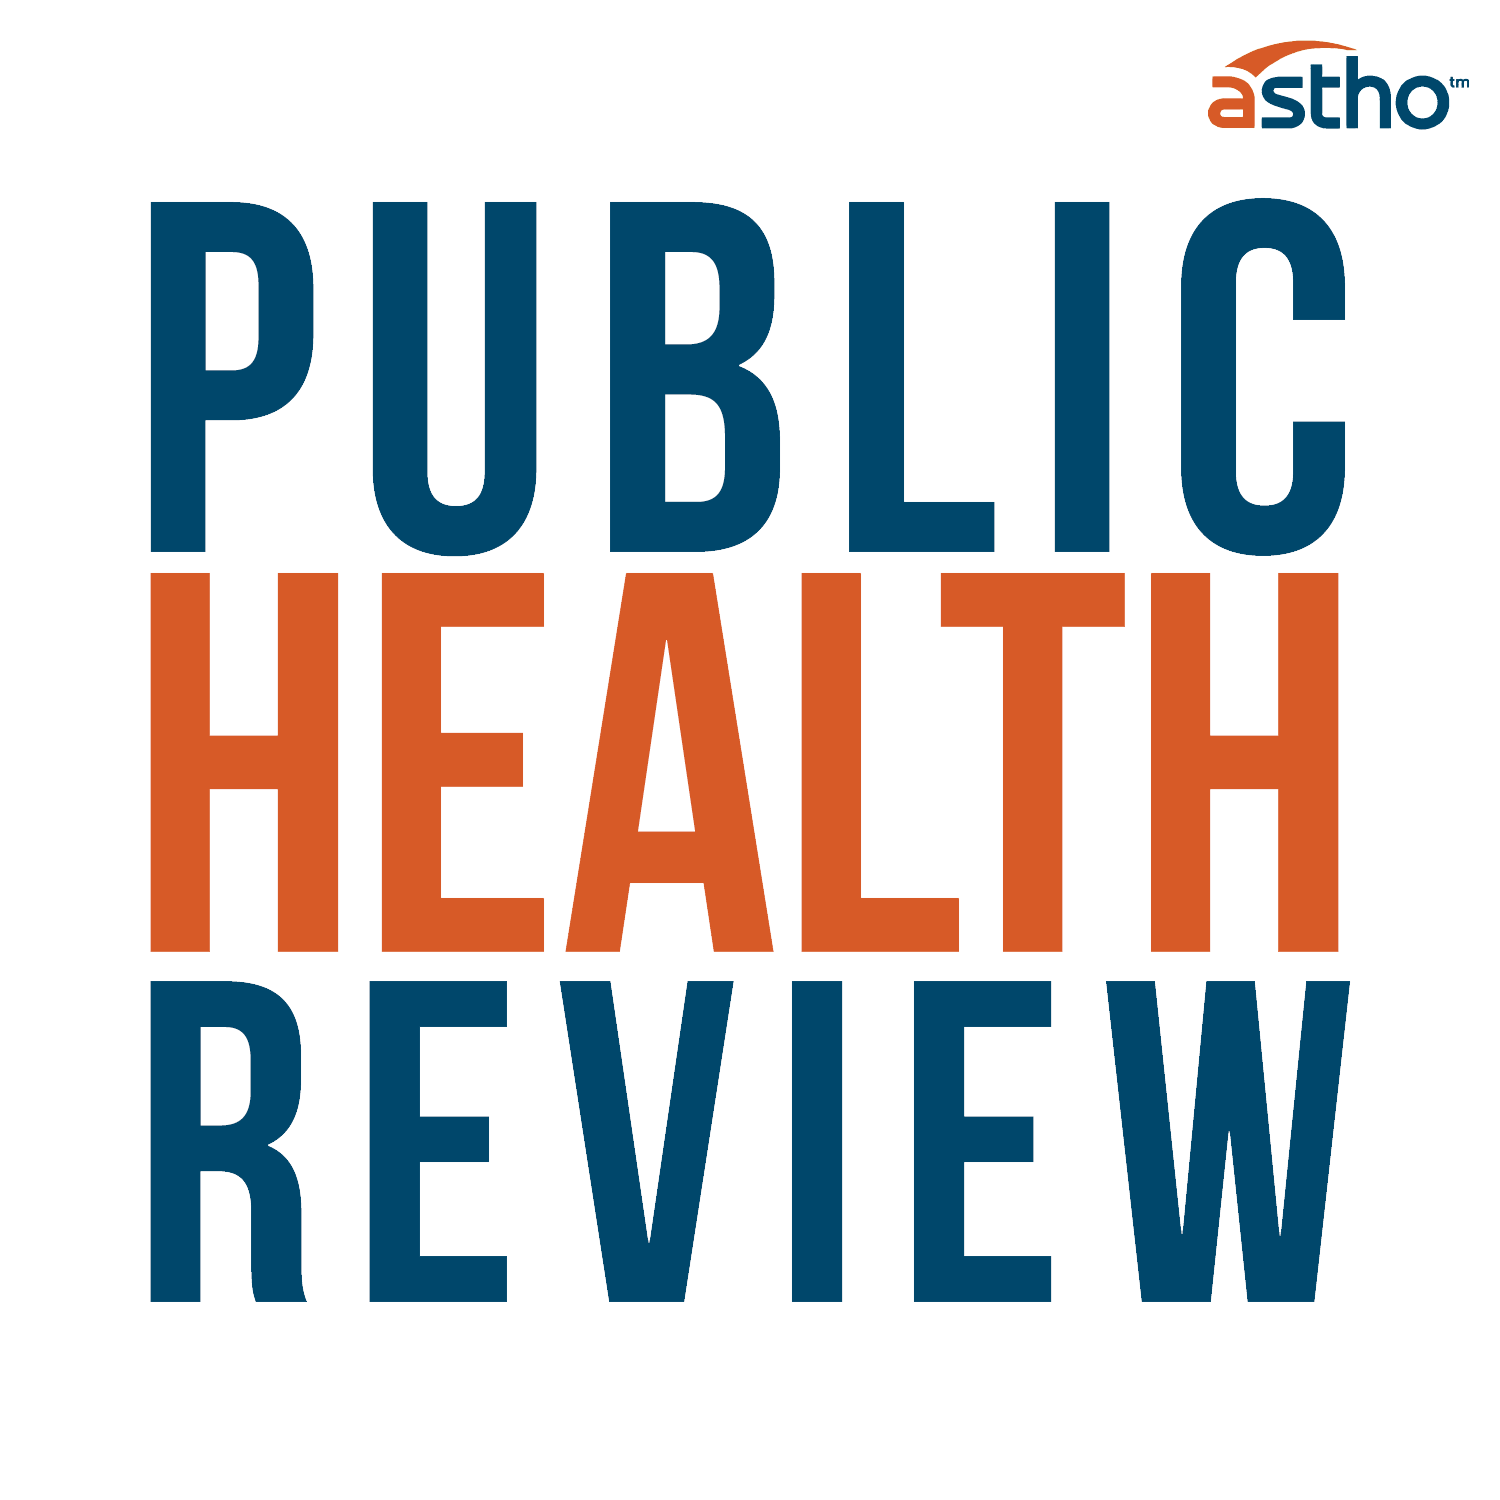 ASTHO's Public Health Review